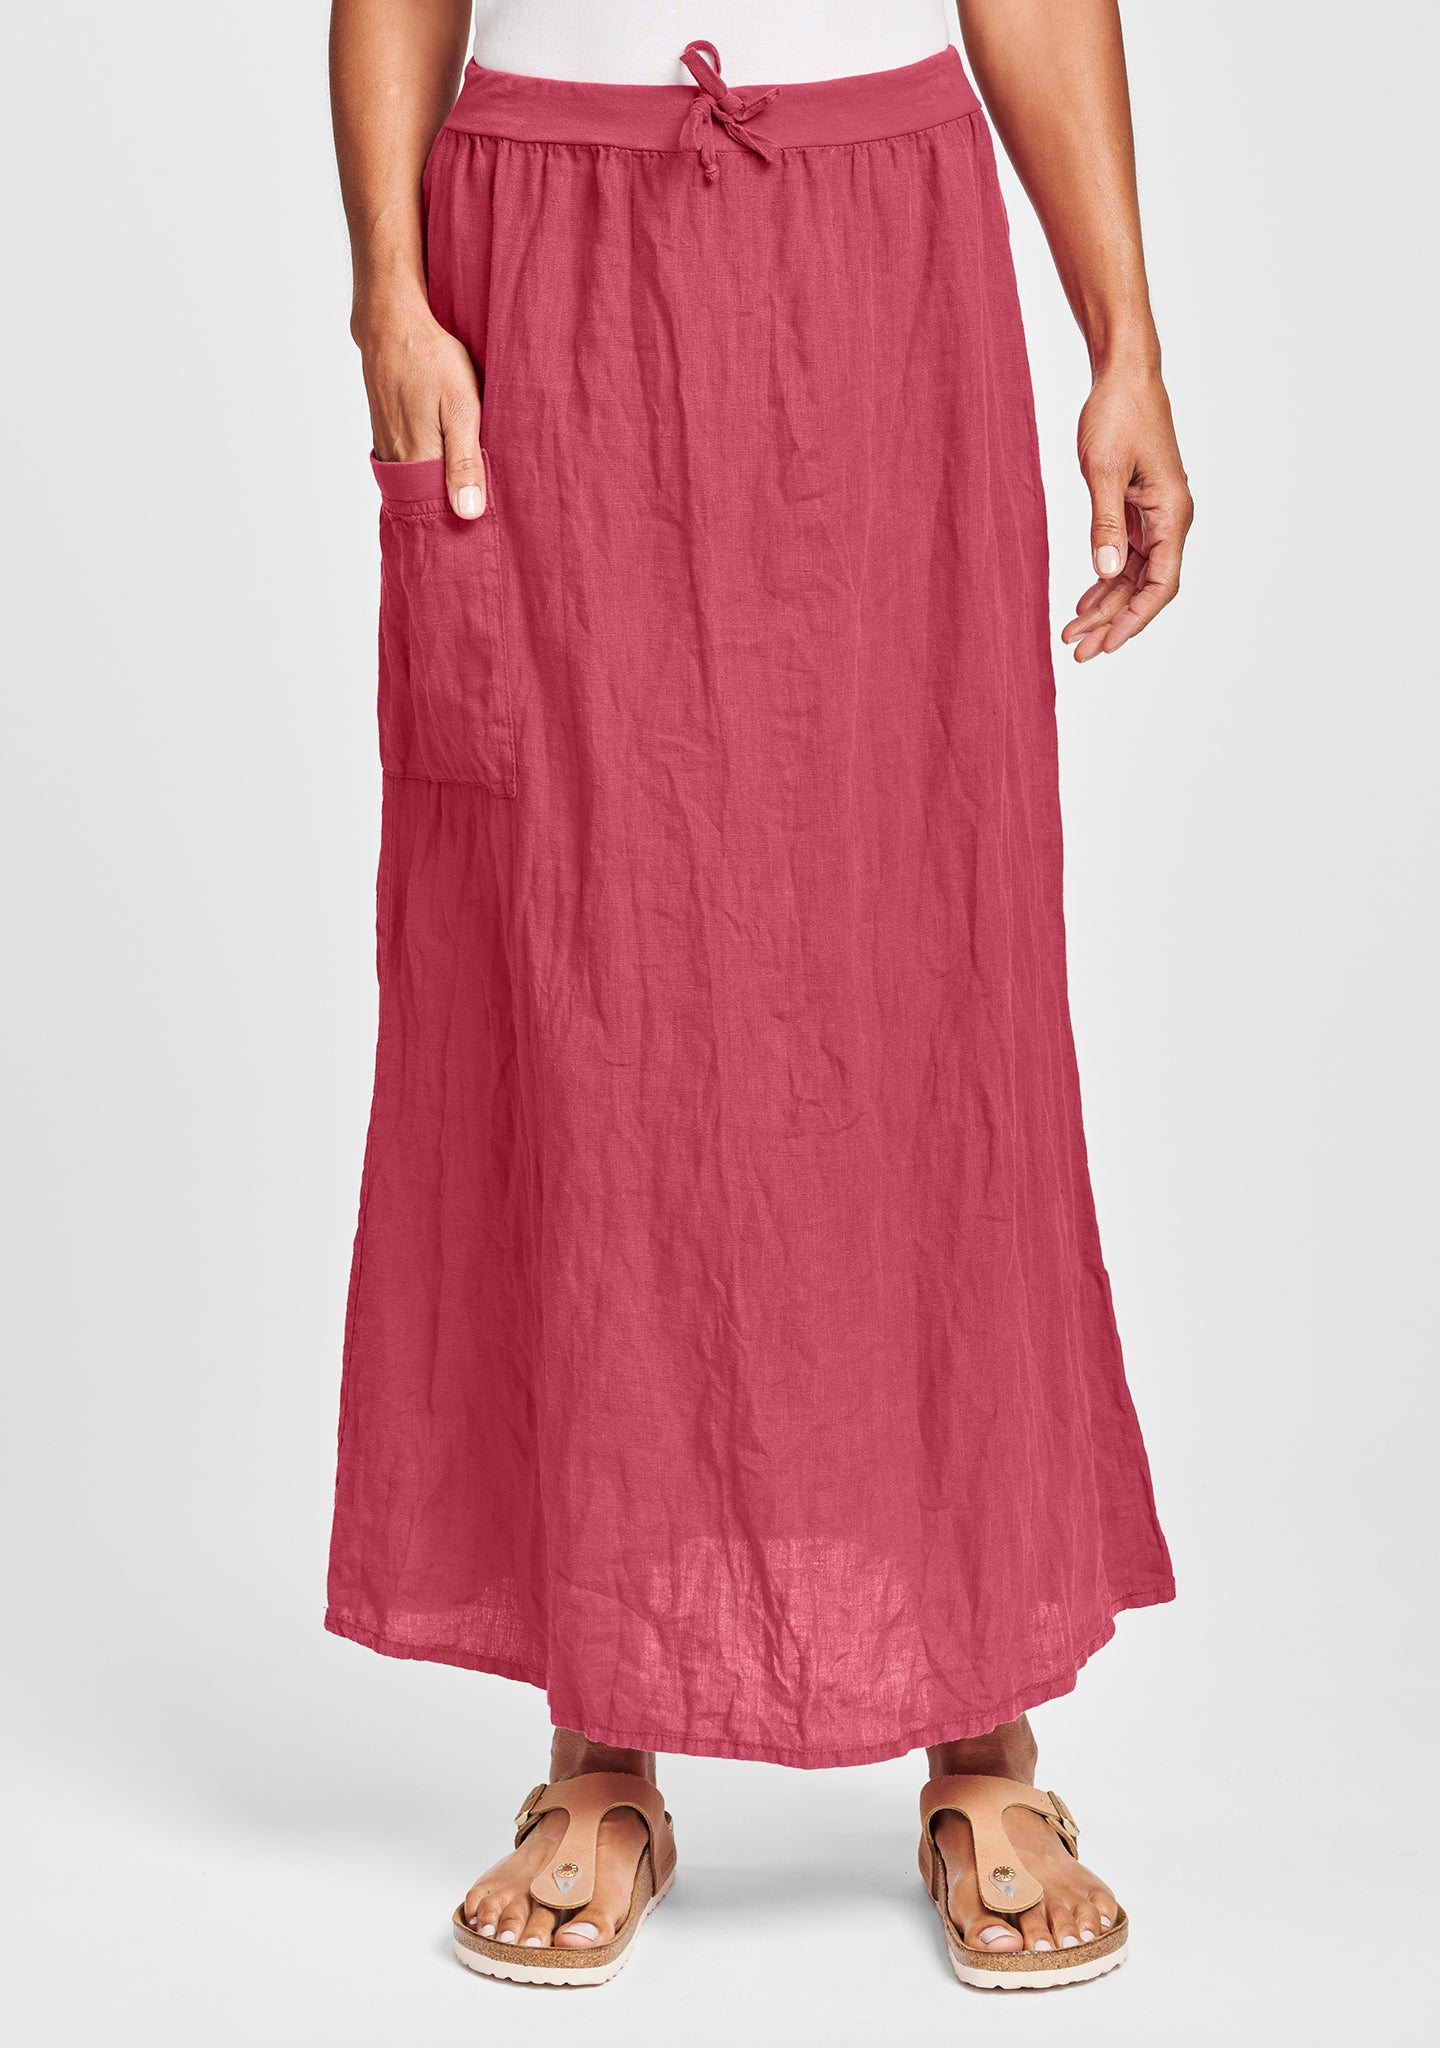 south side skirt linen maxi skirt red